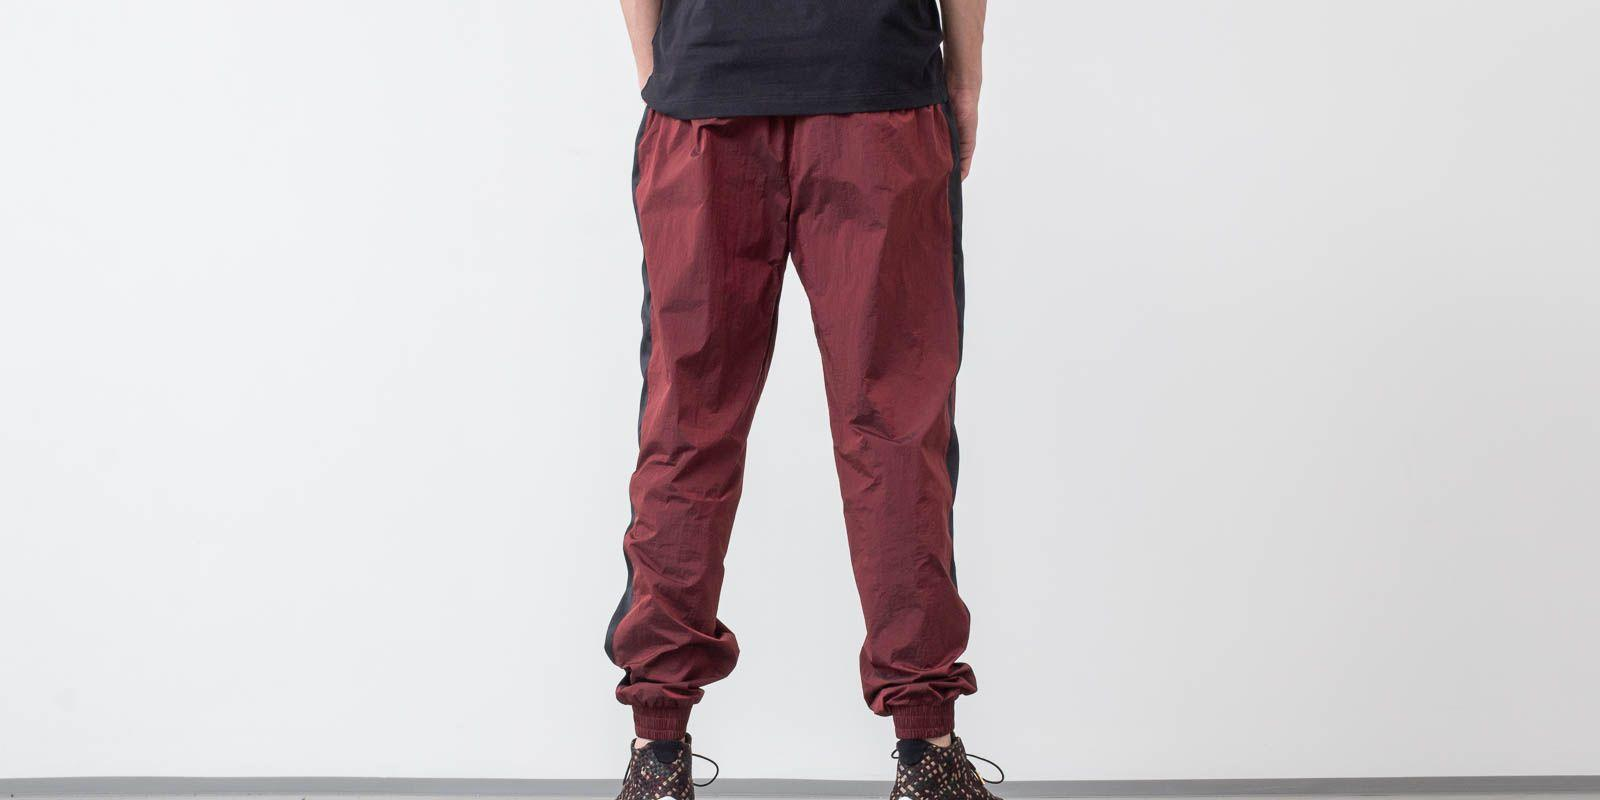 e5fb56a0e45f Lyst - Nike Flight Warm-up Pants Gym Red  Black in Red for Men